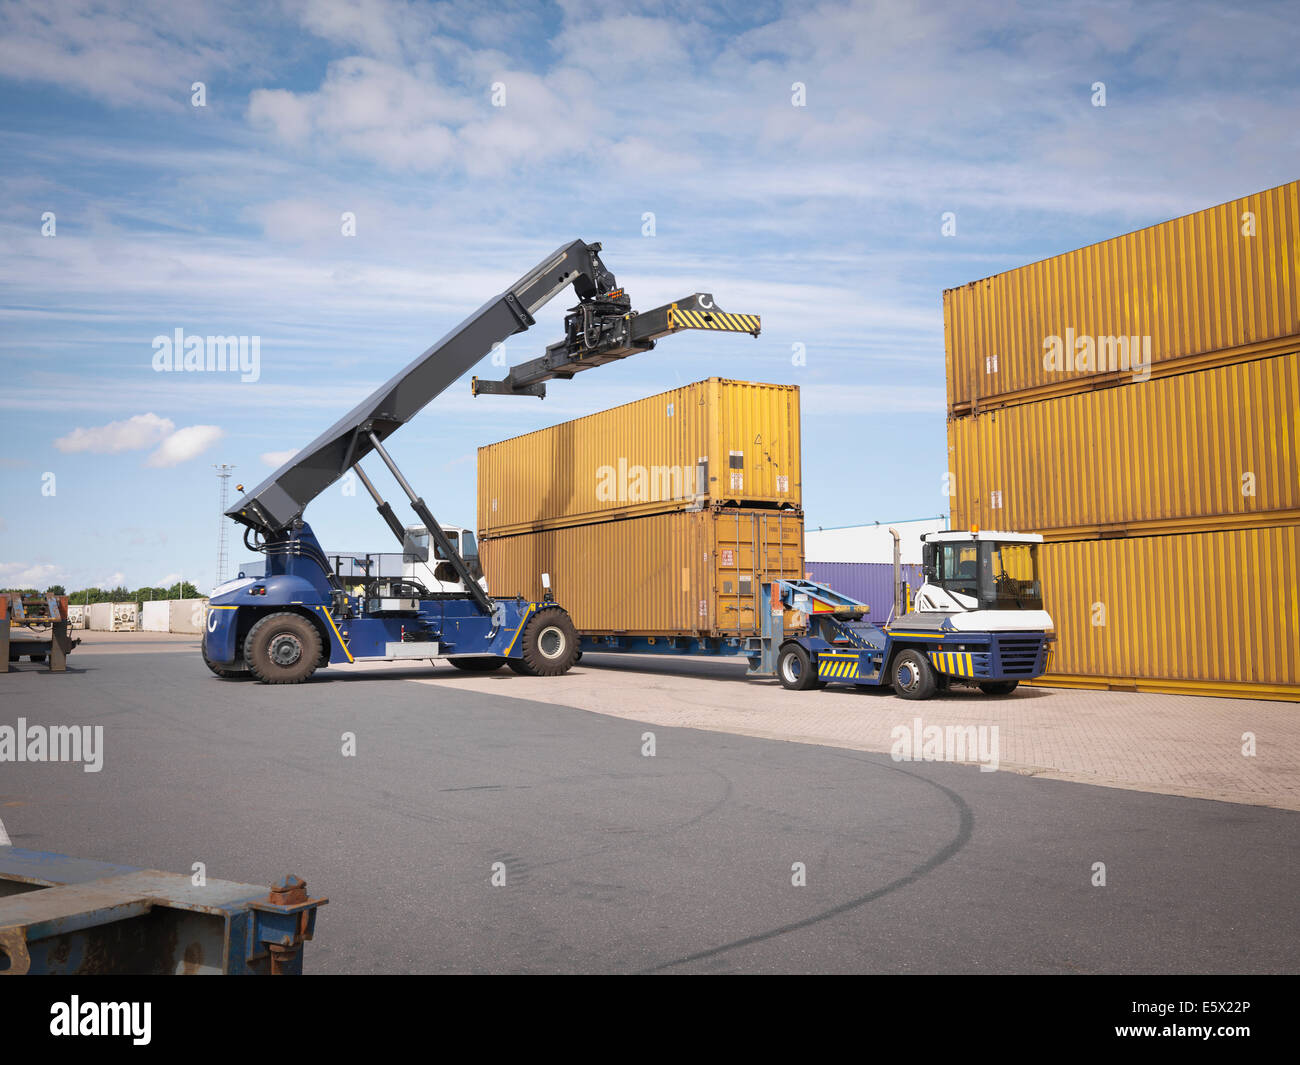 Shipping container stacker in port - Stock Image